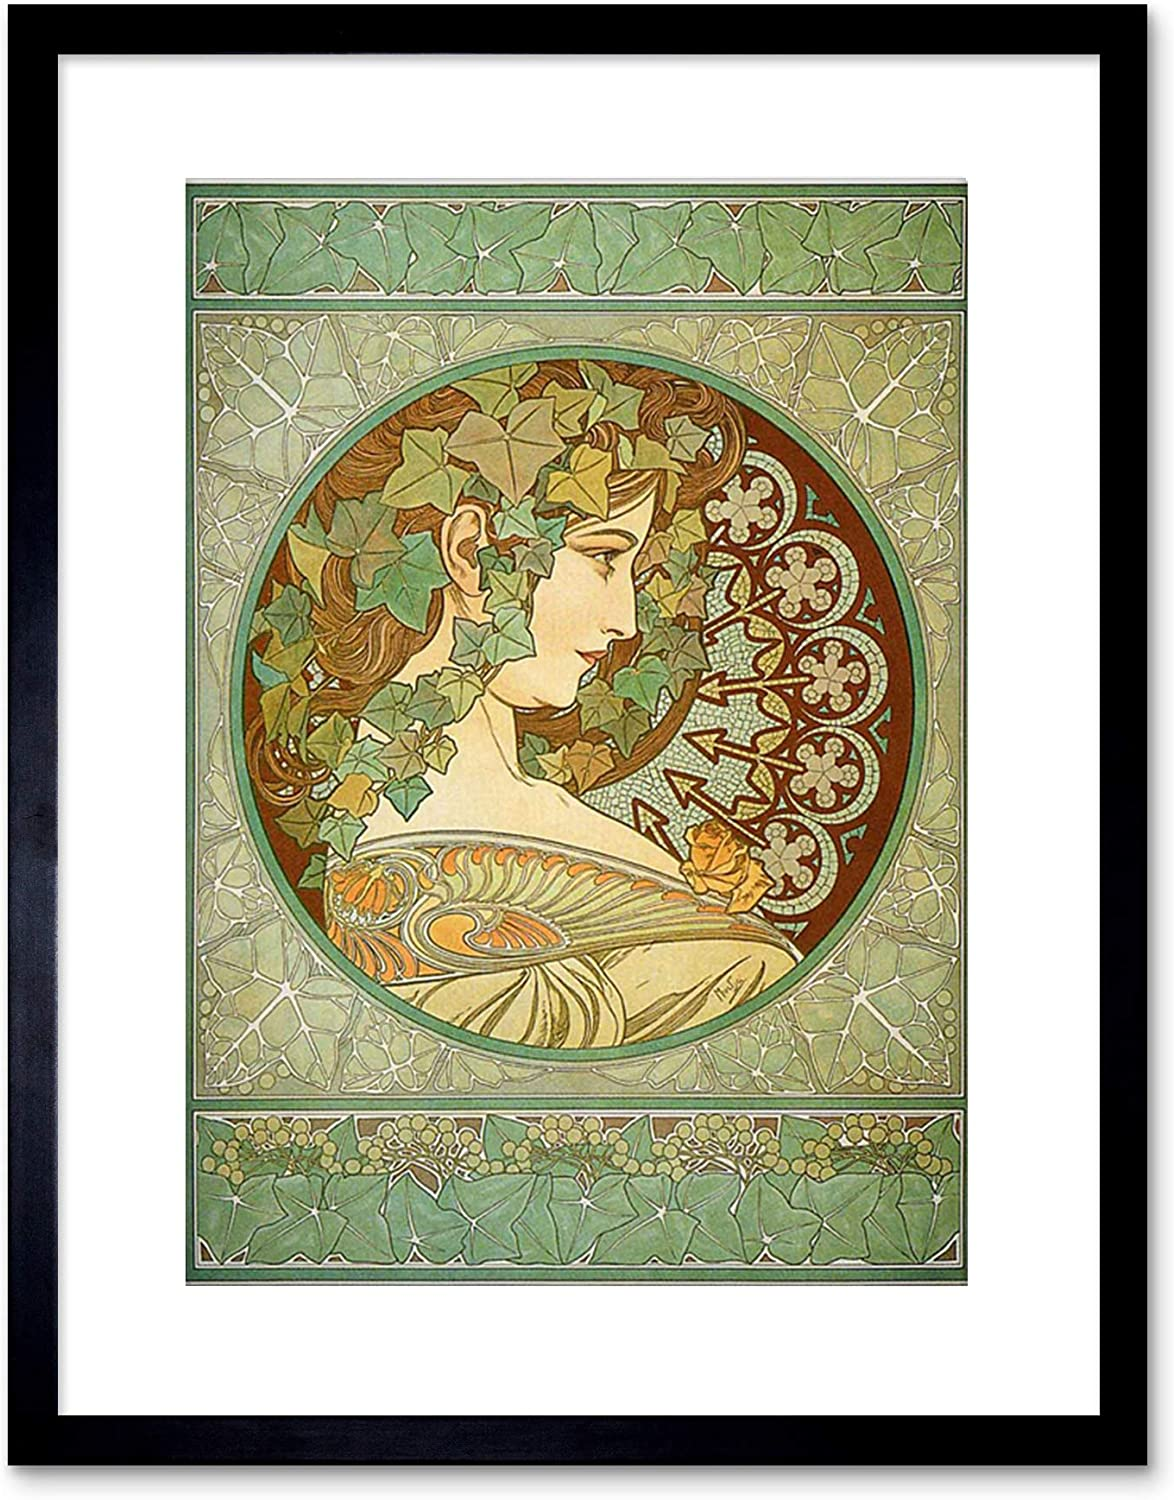 Wee Blue Coo 9x7  MUCHA LAUREL 1901 OLD MASTER PAINTING REPRO FRAMED ART PRINT F97X176